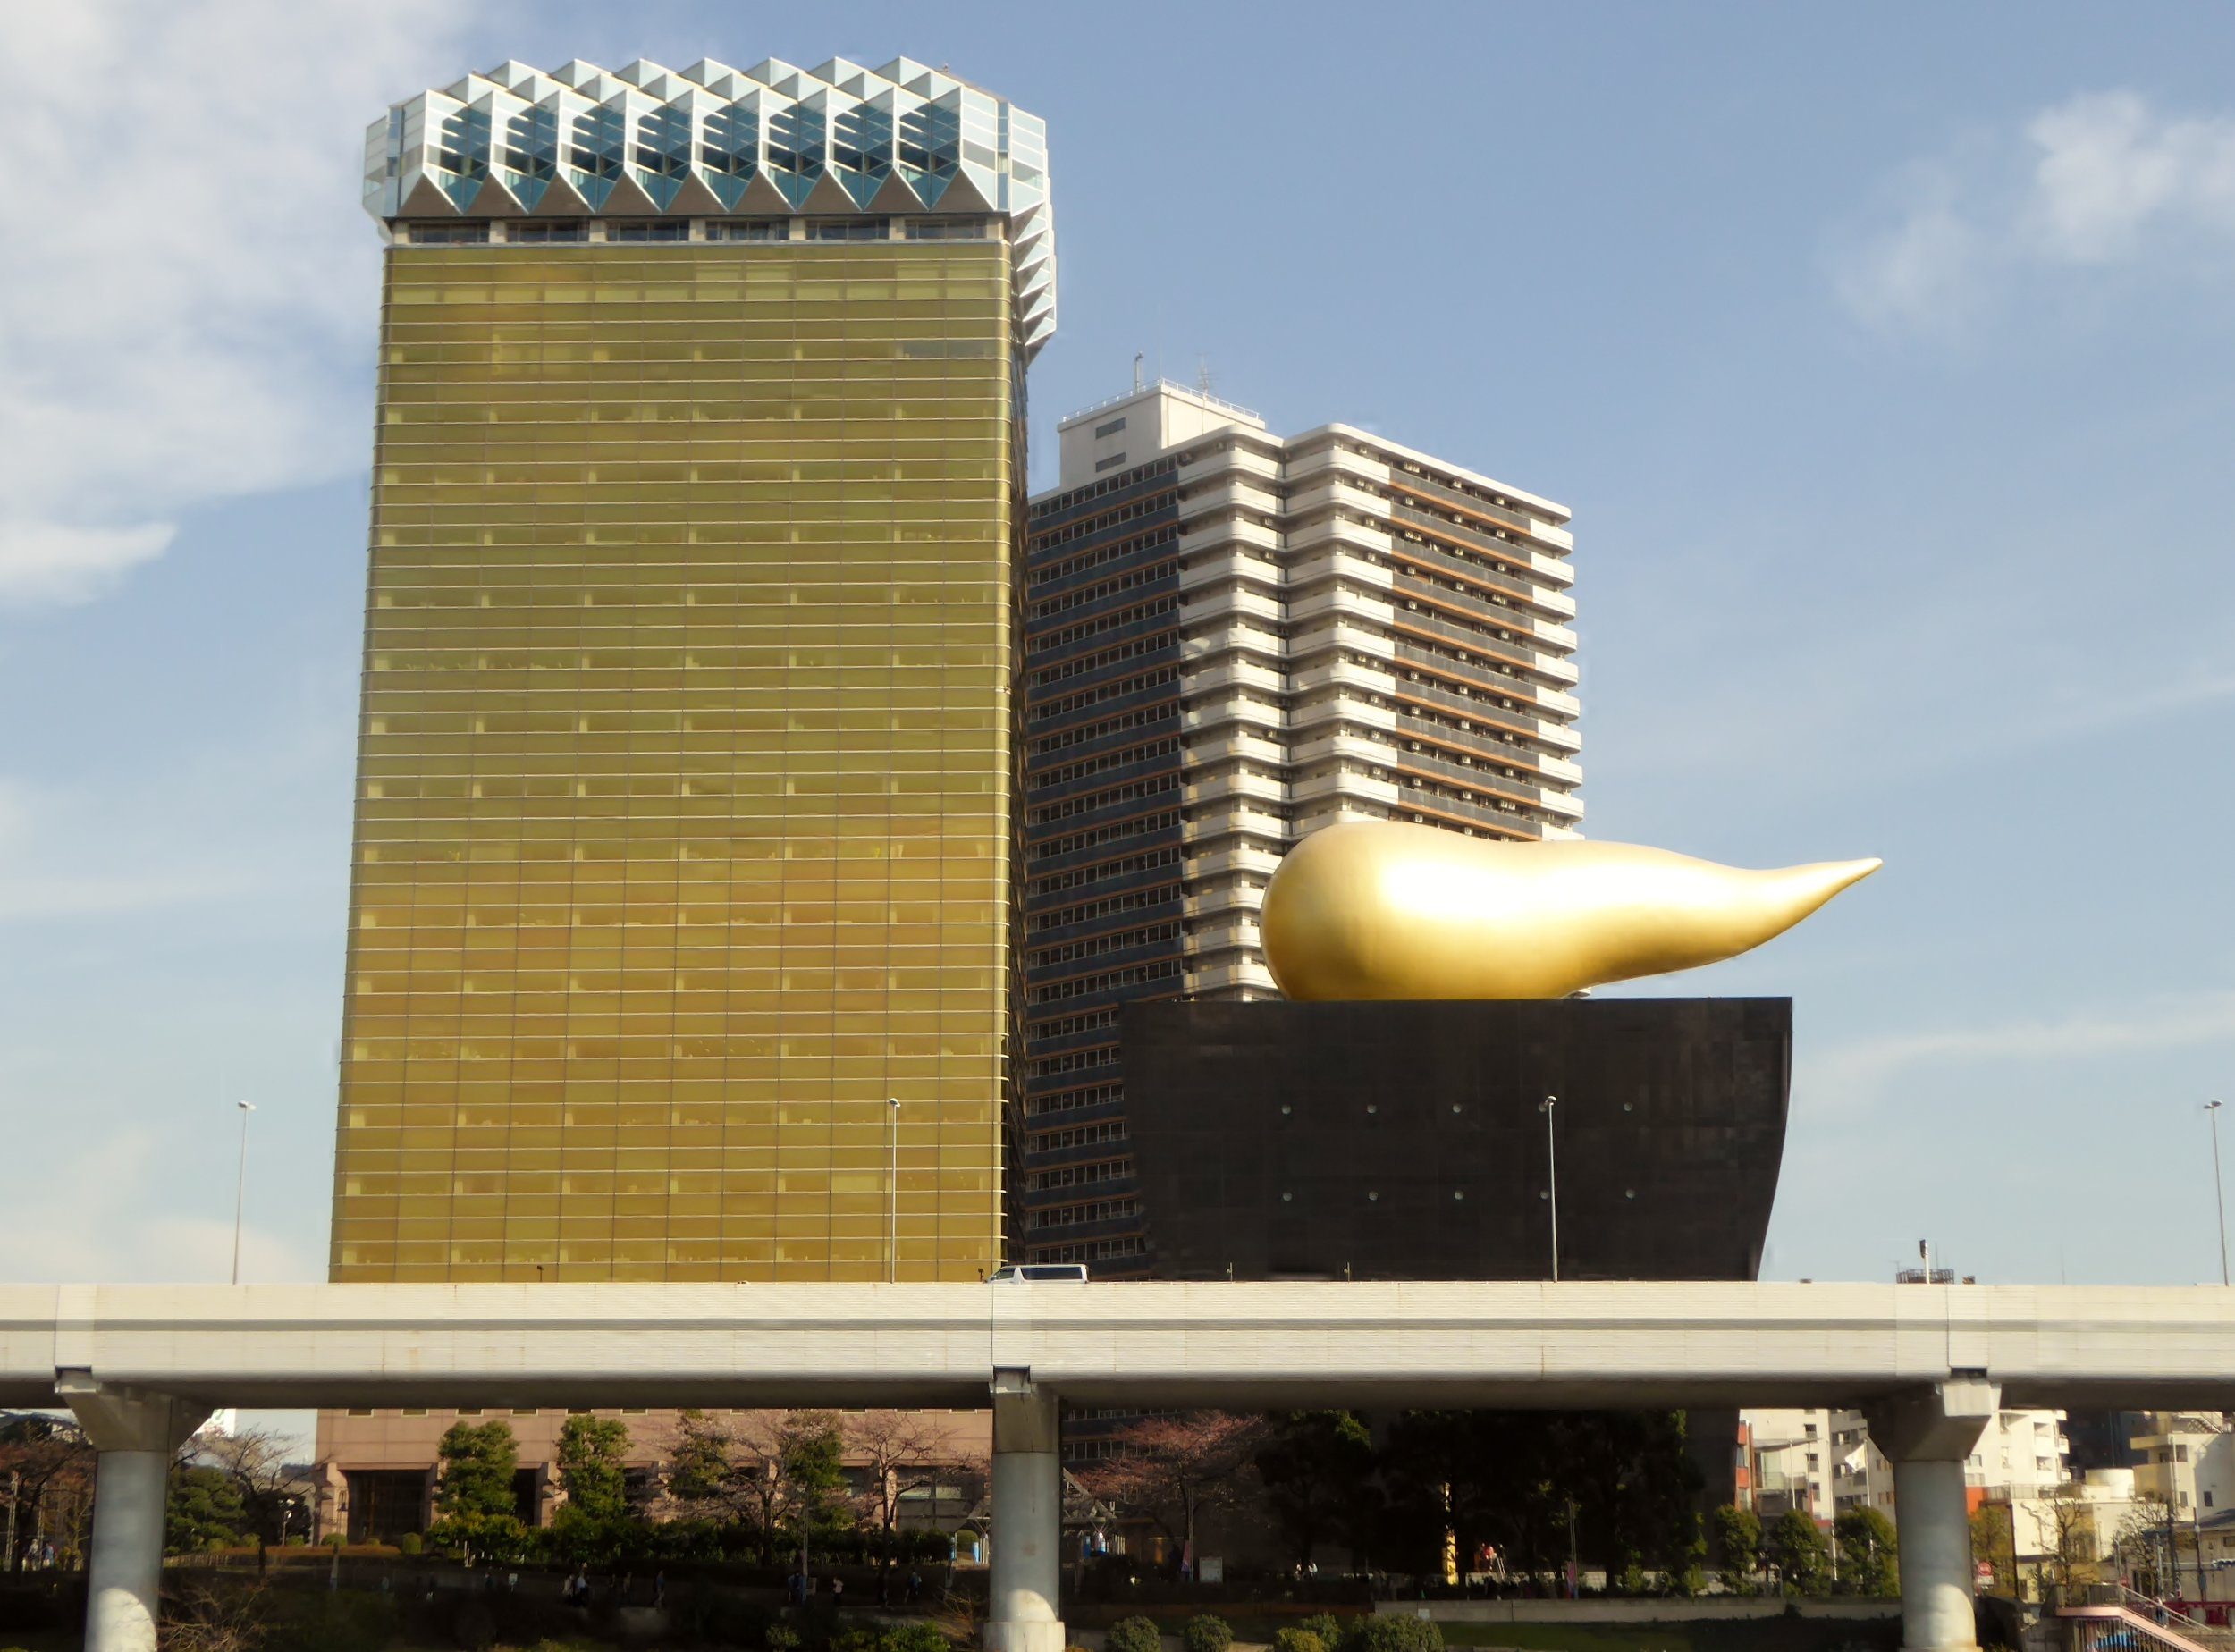 Asahi_Group_Holdings,Ltd._headquarters_and_Super_Dry_Hall.JPG